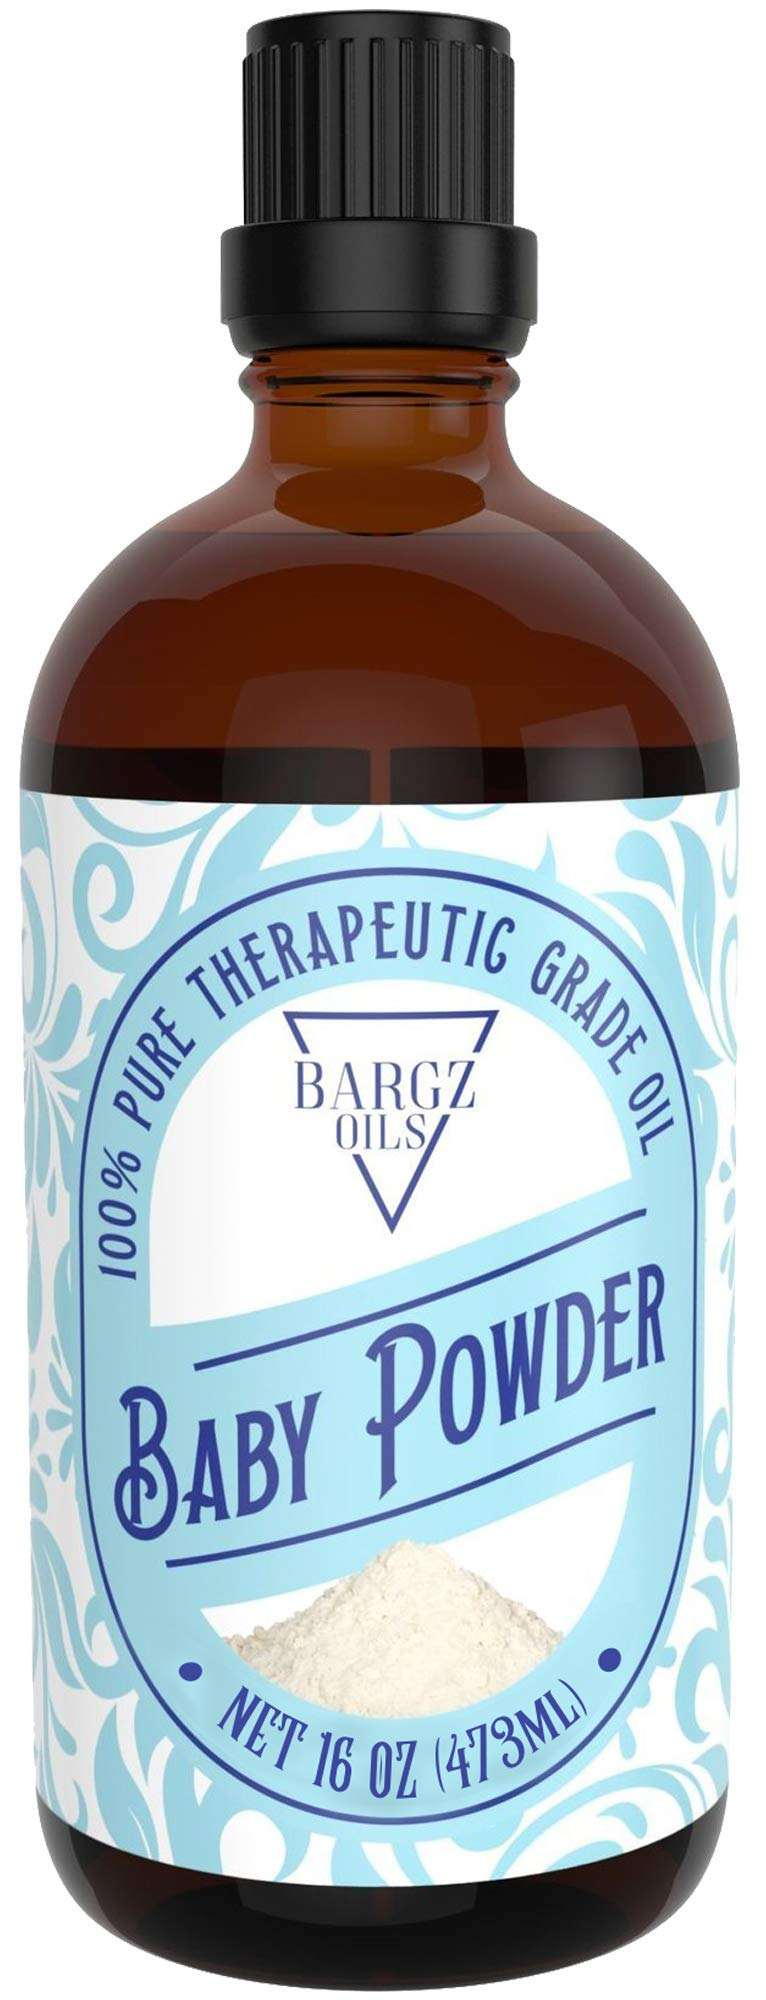 Baby Powder Essential Oil [RELAXING SCENT] - Glass Amber Bottle with Dropper Organic Pure Therapeutic French for Diffuser, Aromatherapy, Headache, Pain, Sleep-Perfect For Candles & Massage (16 oz)